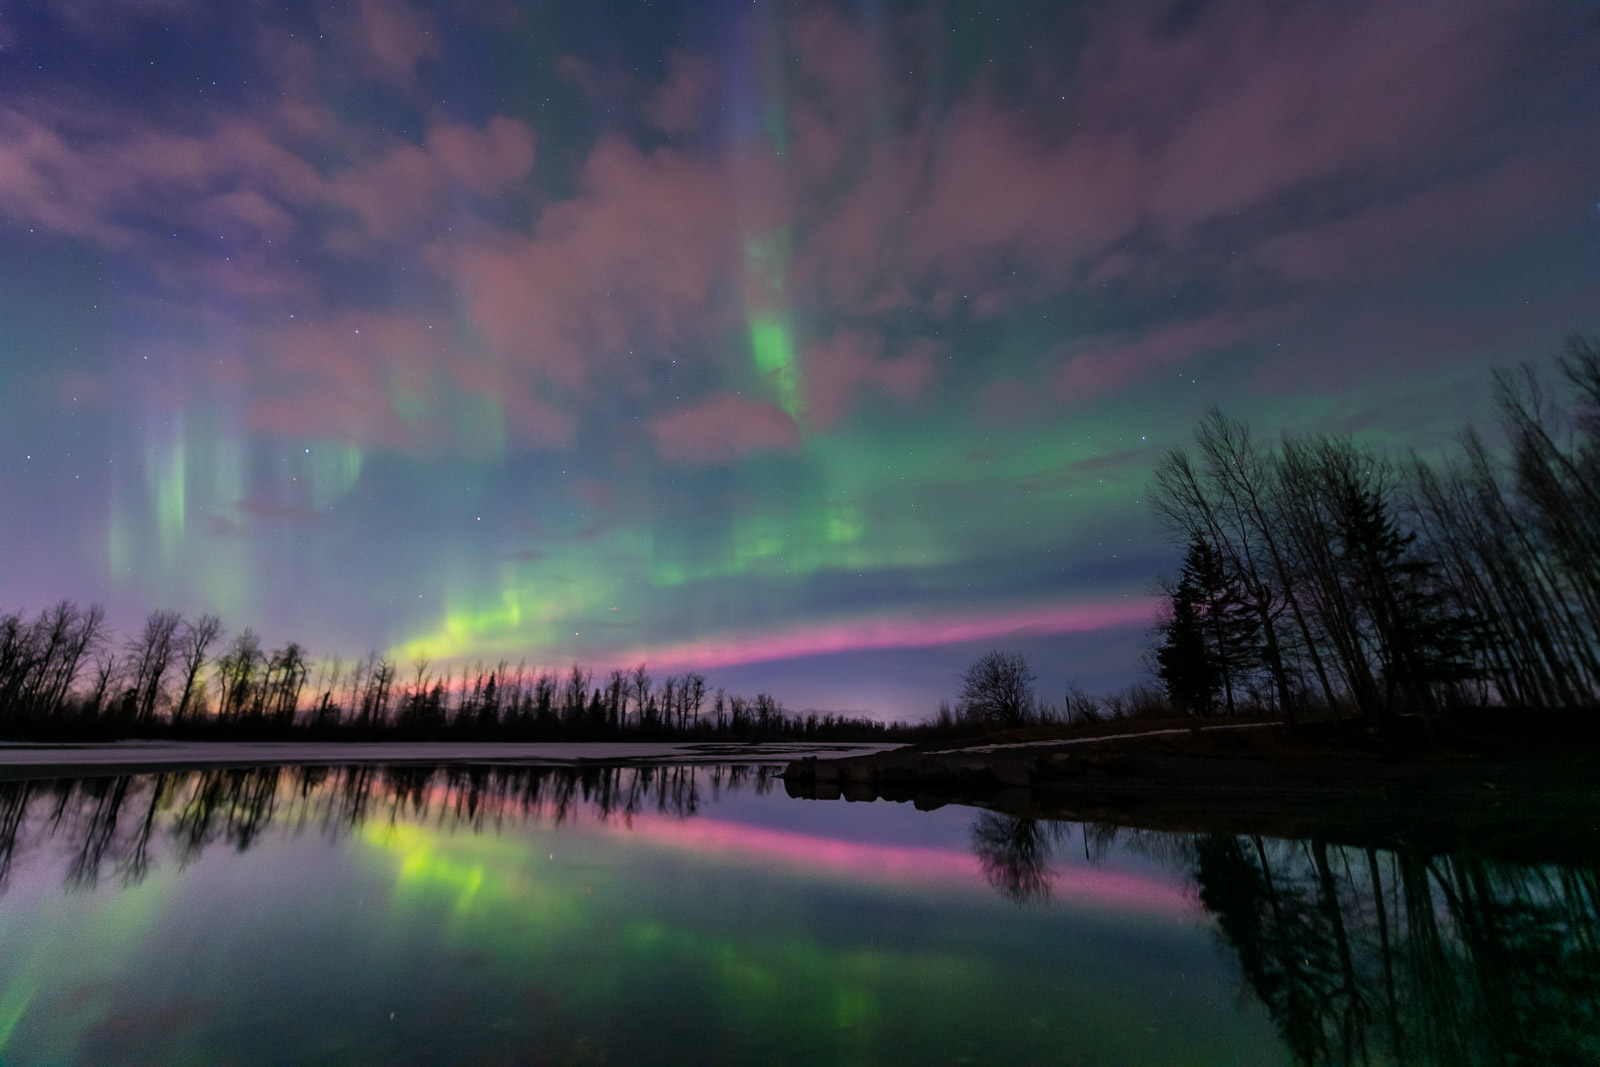 It has been an amazing season for aurora borealis photography, even seeing new colors. While we do occasionally see pink in the...